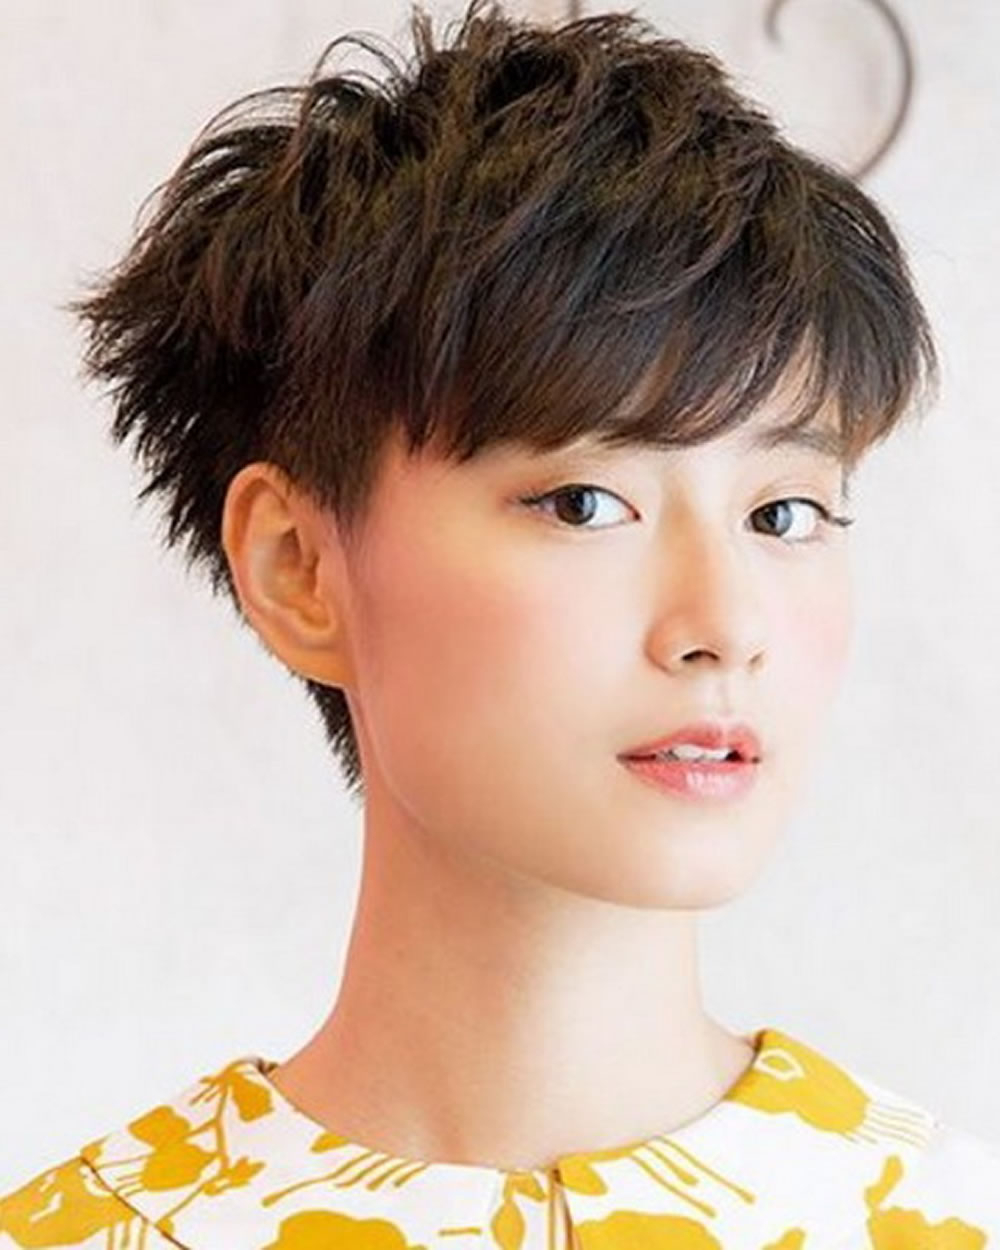 Well Liked Messy Pixie Asian Hairstyles Inside Pixie Haircuts For Asian Women (View 19 of 20)